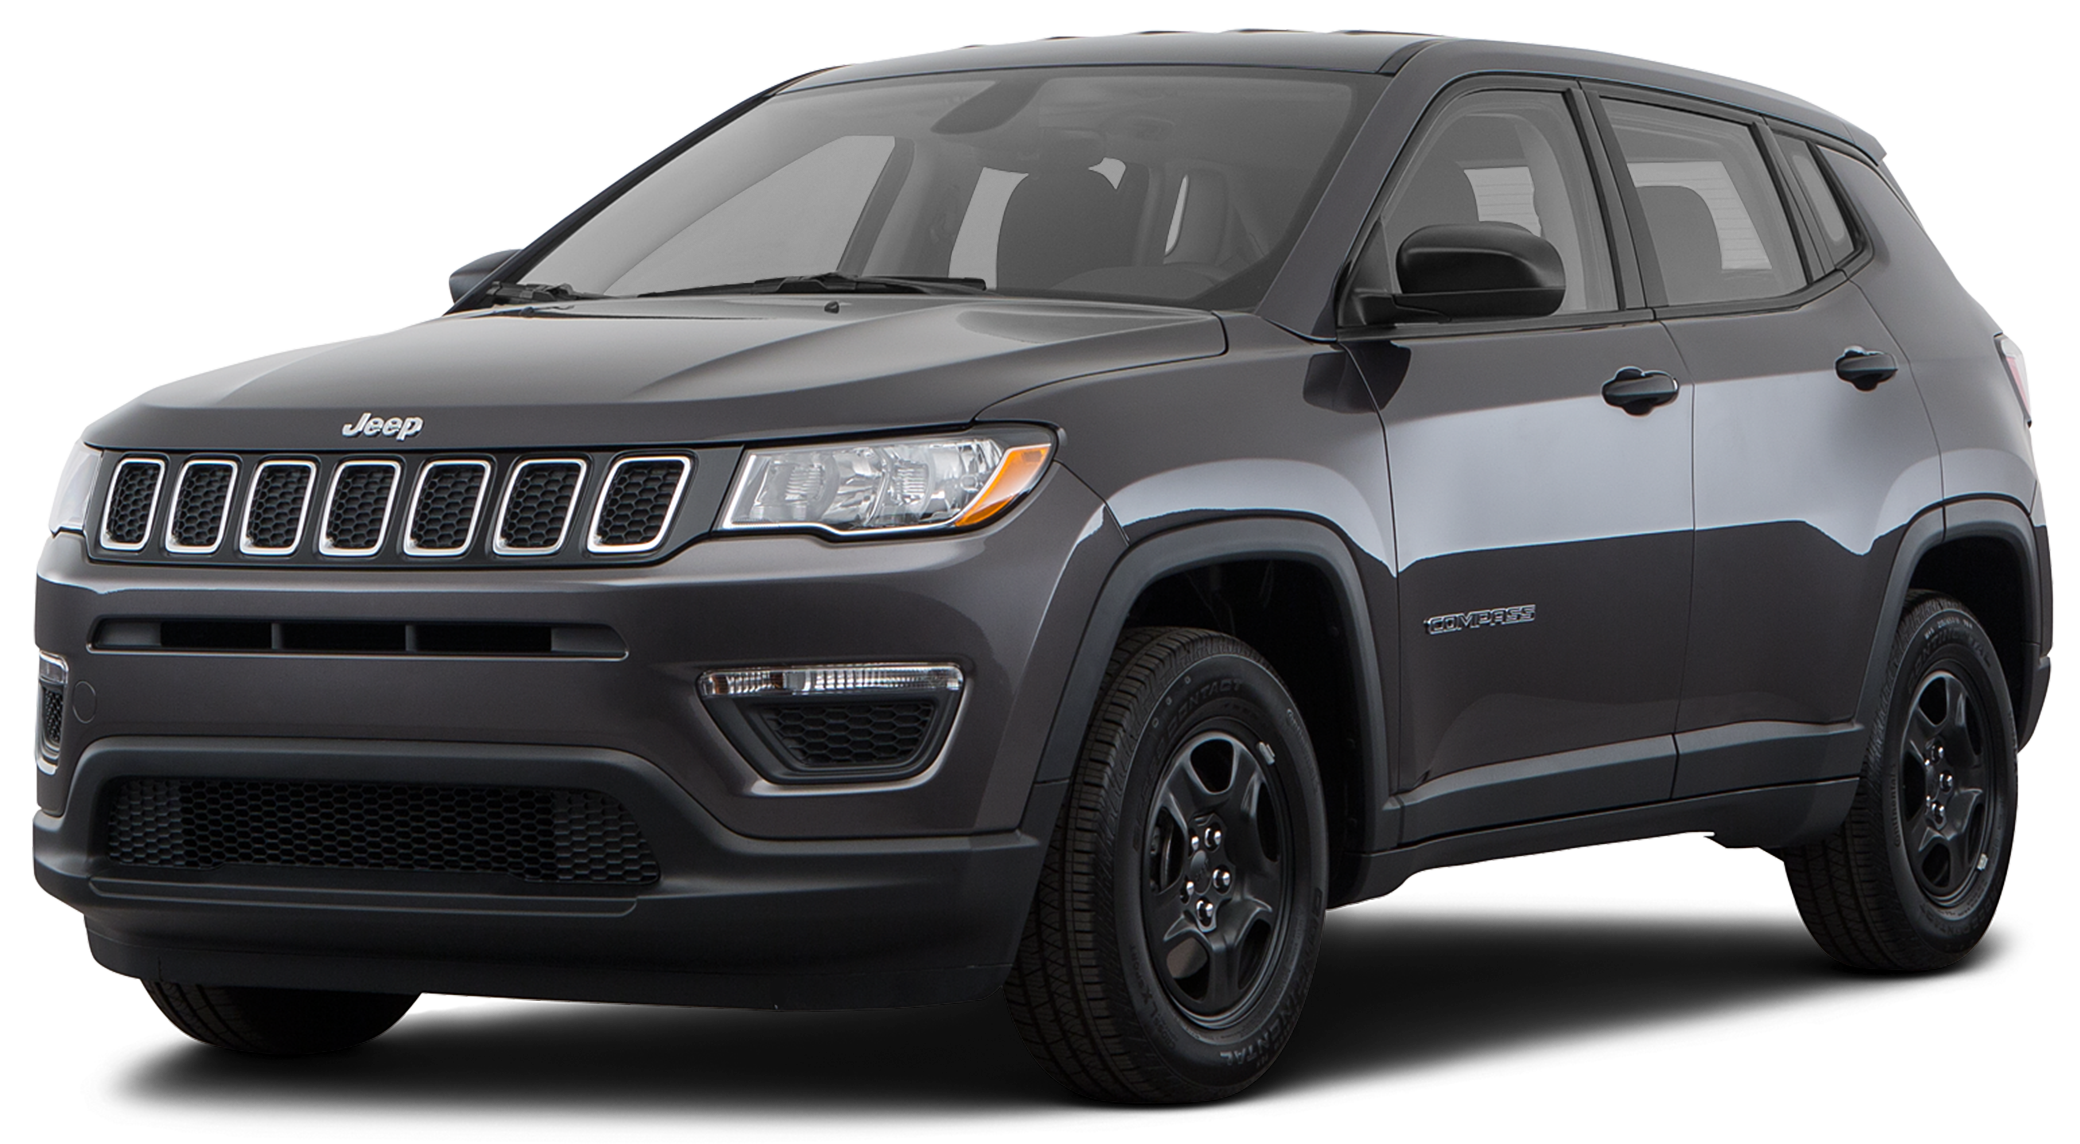 Review & Compare the 2019 Jeep Compass at Larry H. Miller